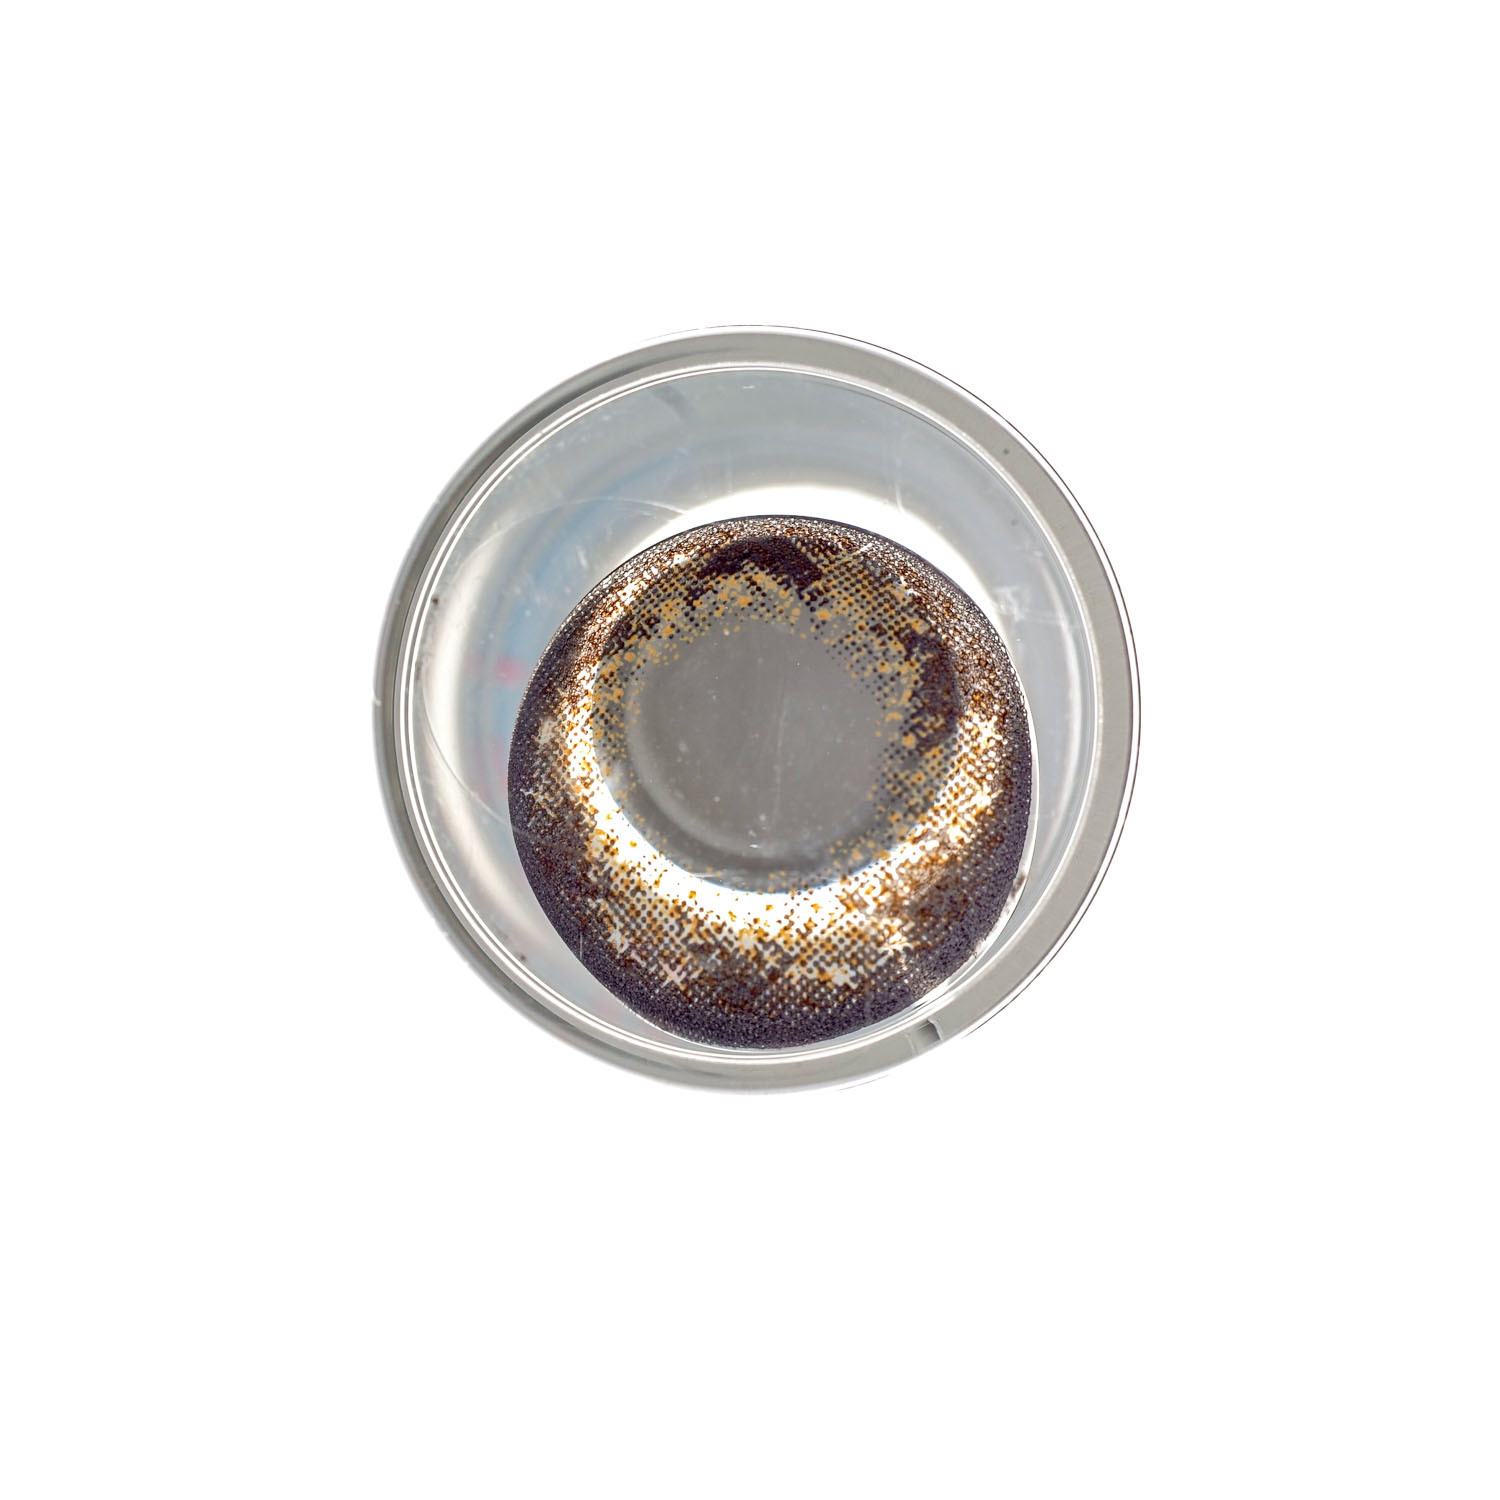 SPARKLE BARBIE EYES BROWN ( 16 MM WITH 21 MM ) CONTACT LENS